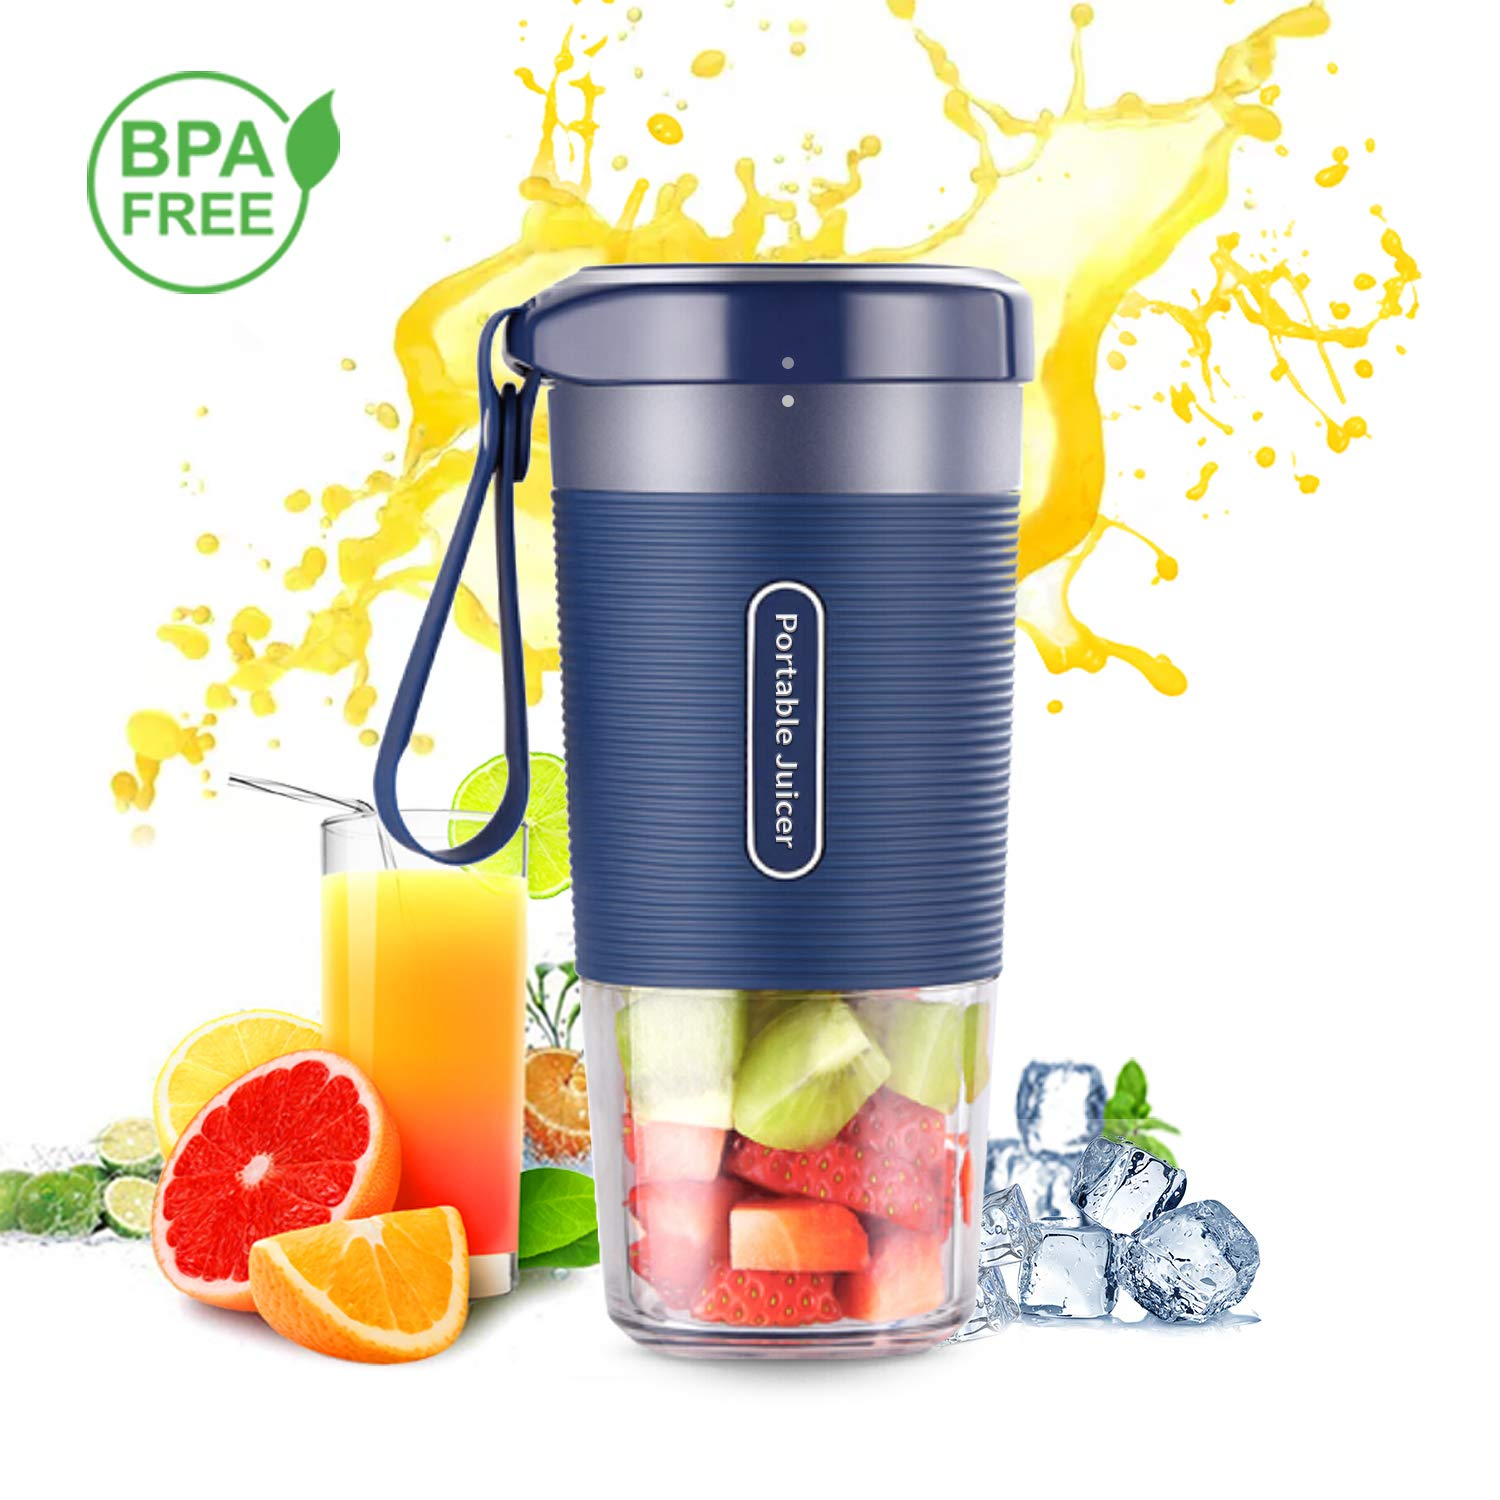 Portable Blender,DOUHE Cordless Mini Personal Blender Small Smoothie Blender USB Fruit Juicer Mixer -Home Outdoor Travel Office - USB Rechargeable,IP68 Waterproof,BPA Free by DOUHE (Image #1)